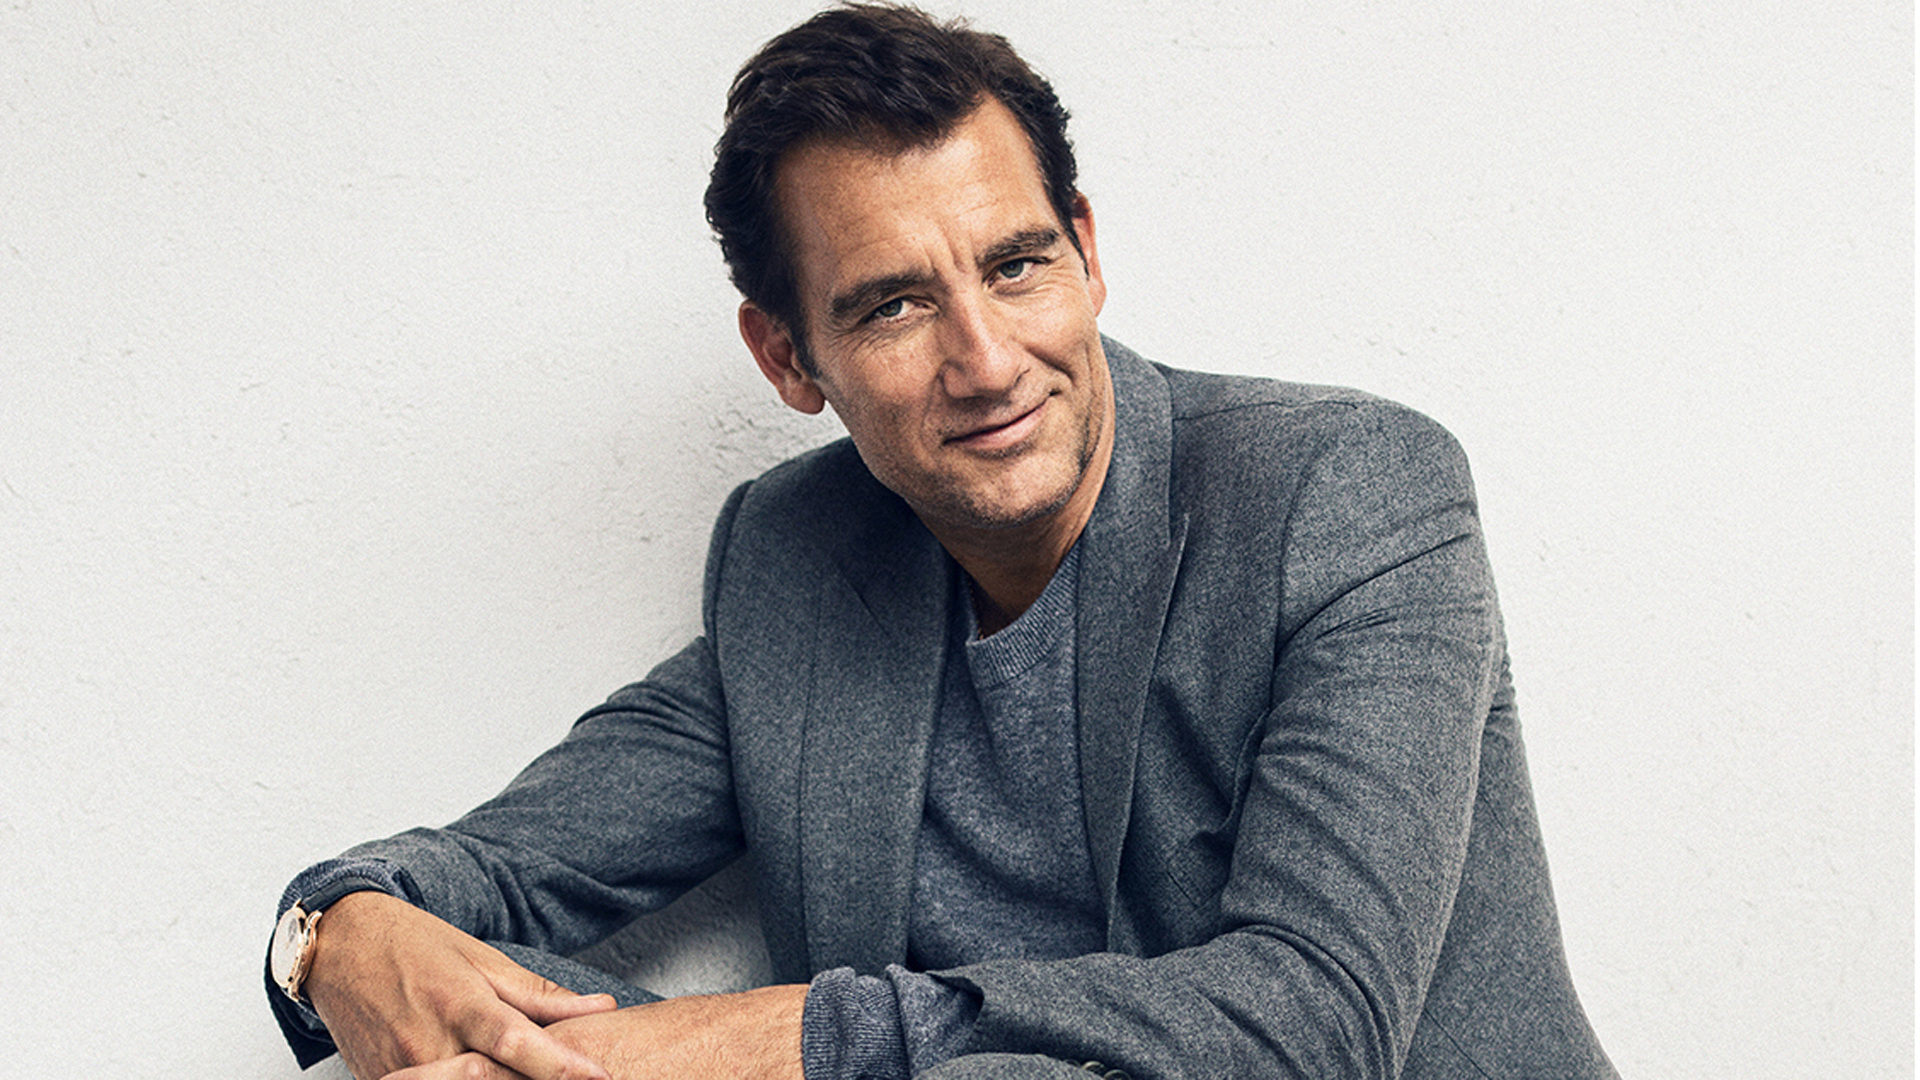 Clive Owen High Definition Wallpapers